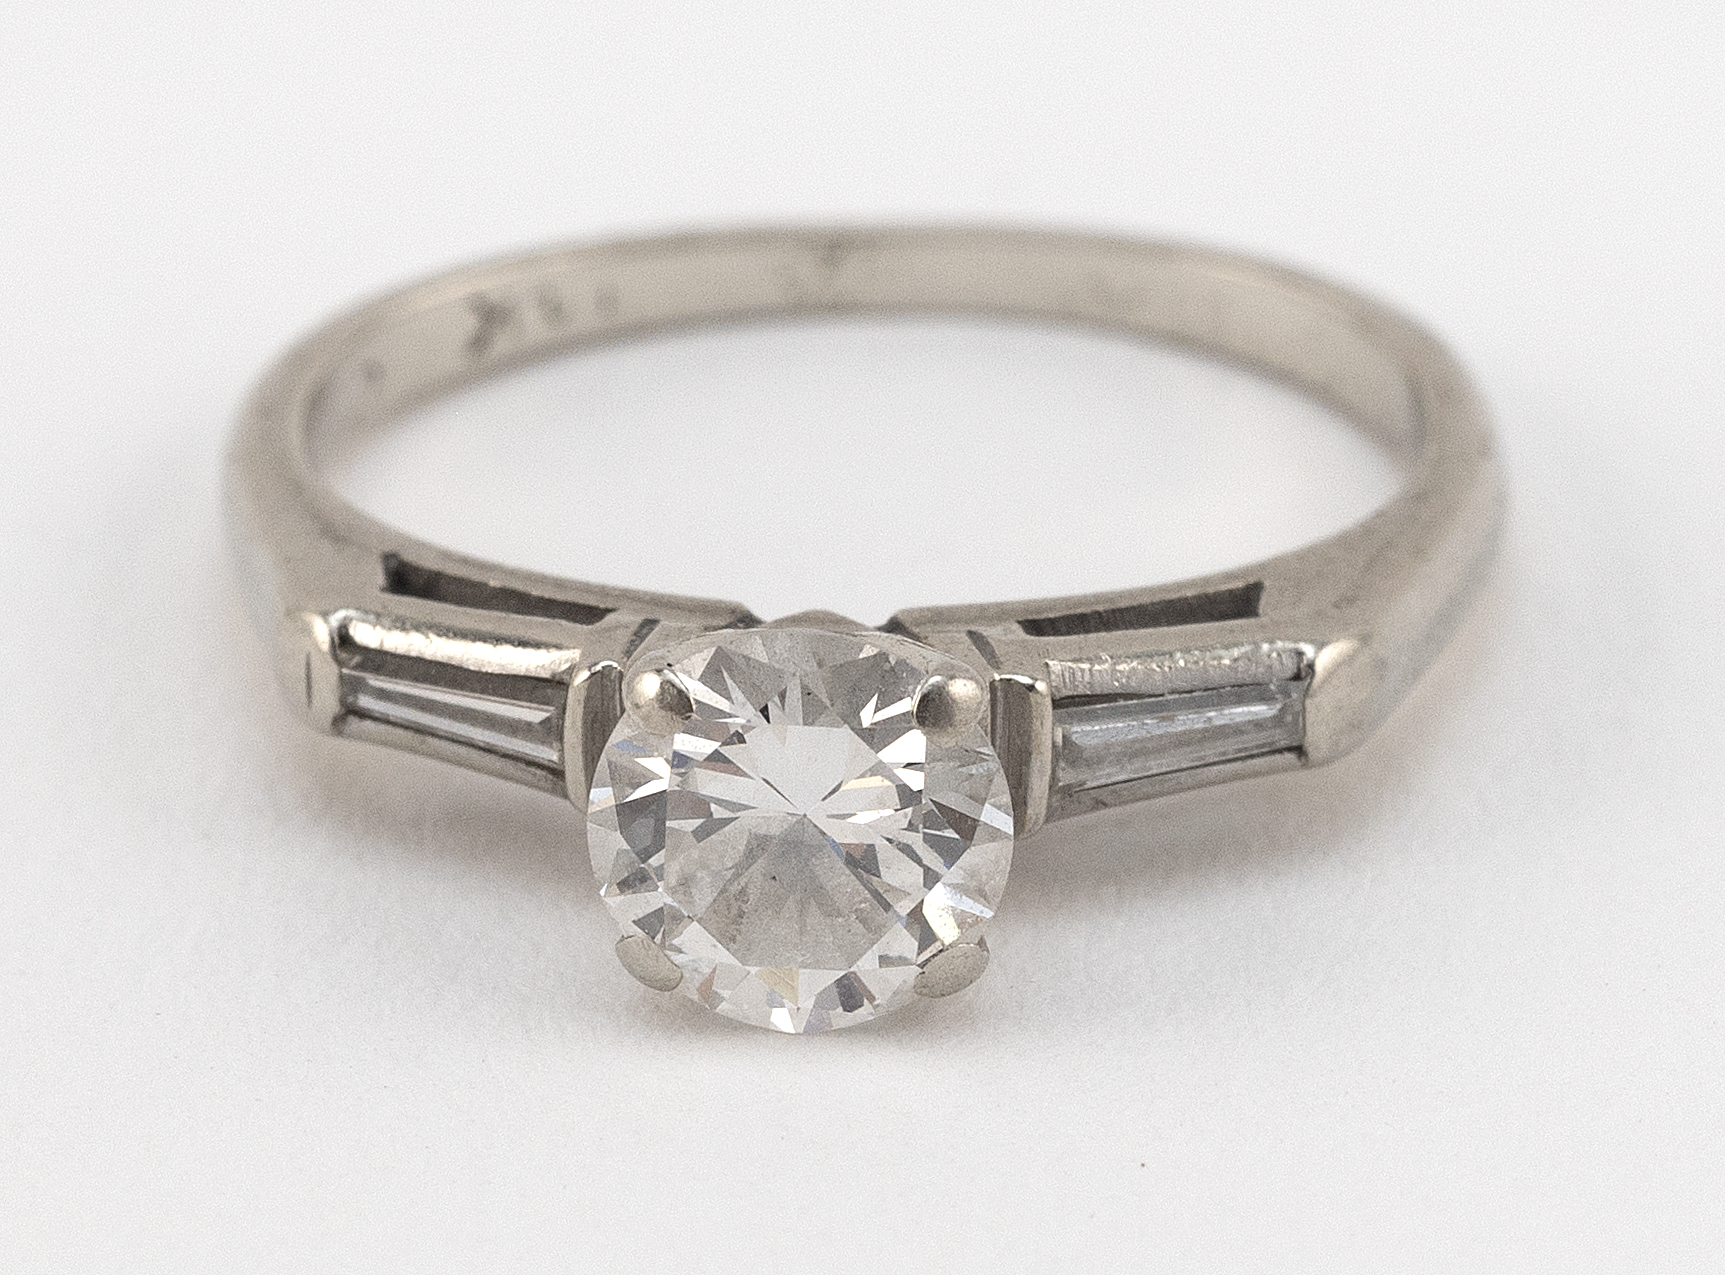 VINTAGE 14KT WHITE GOLD AND DIAMOND SOLITAIRE Approx. 1.34 total dwt.